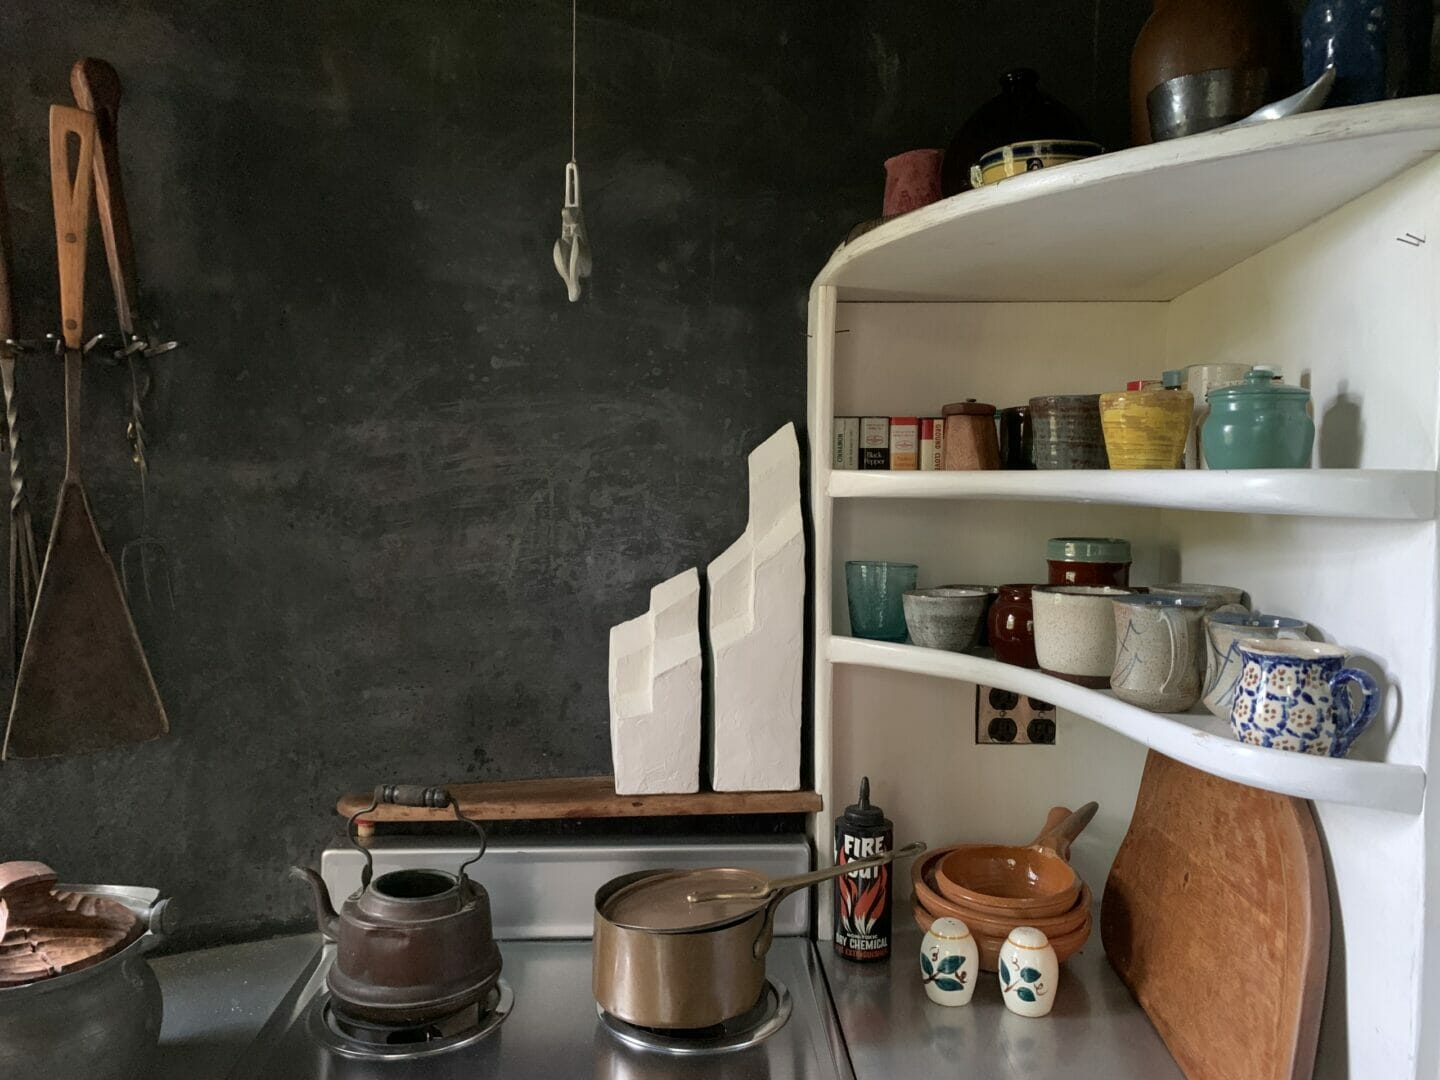 two stepped white sculptural forms sit on a shelf behind a kitchen stove. White shelves with kitchen items extend to the right.